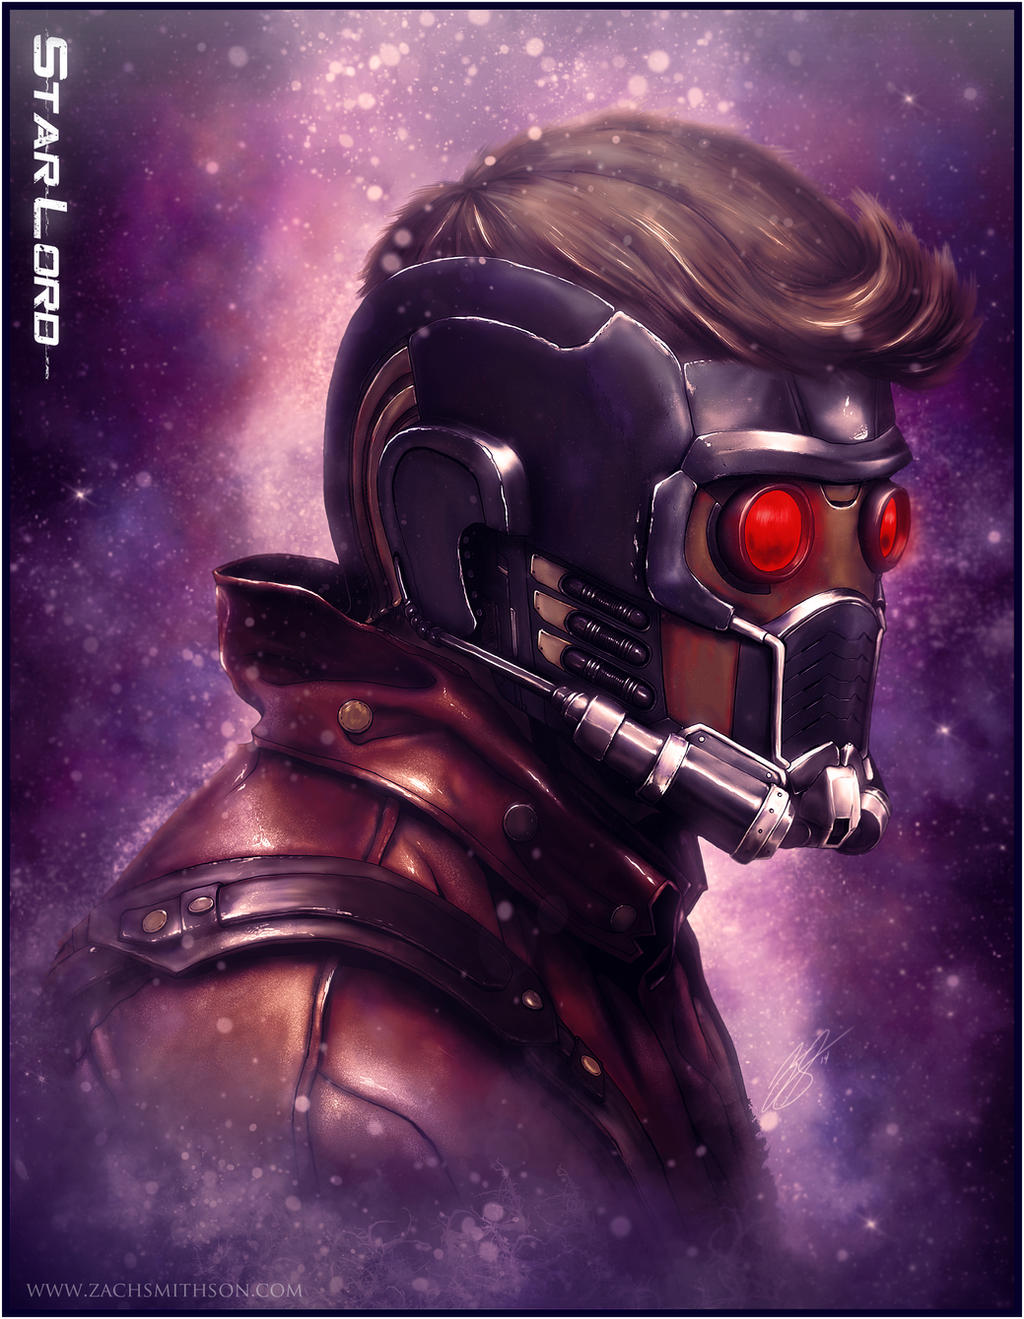 Star Lord by ZachSmithson on DeviantArt